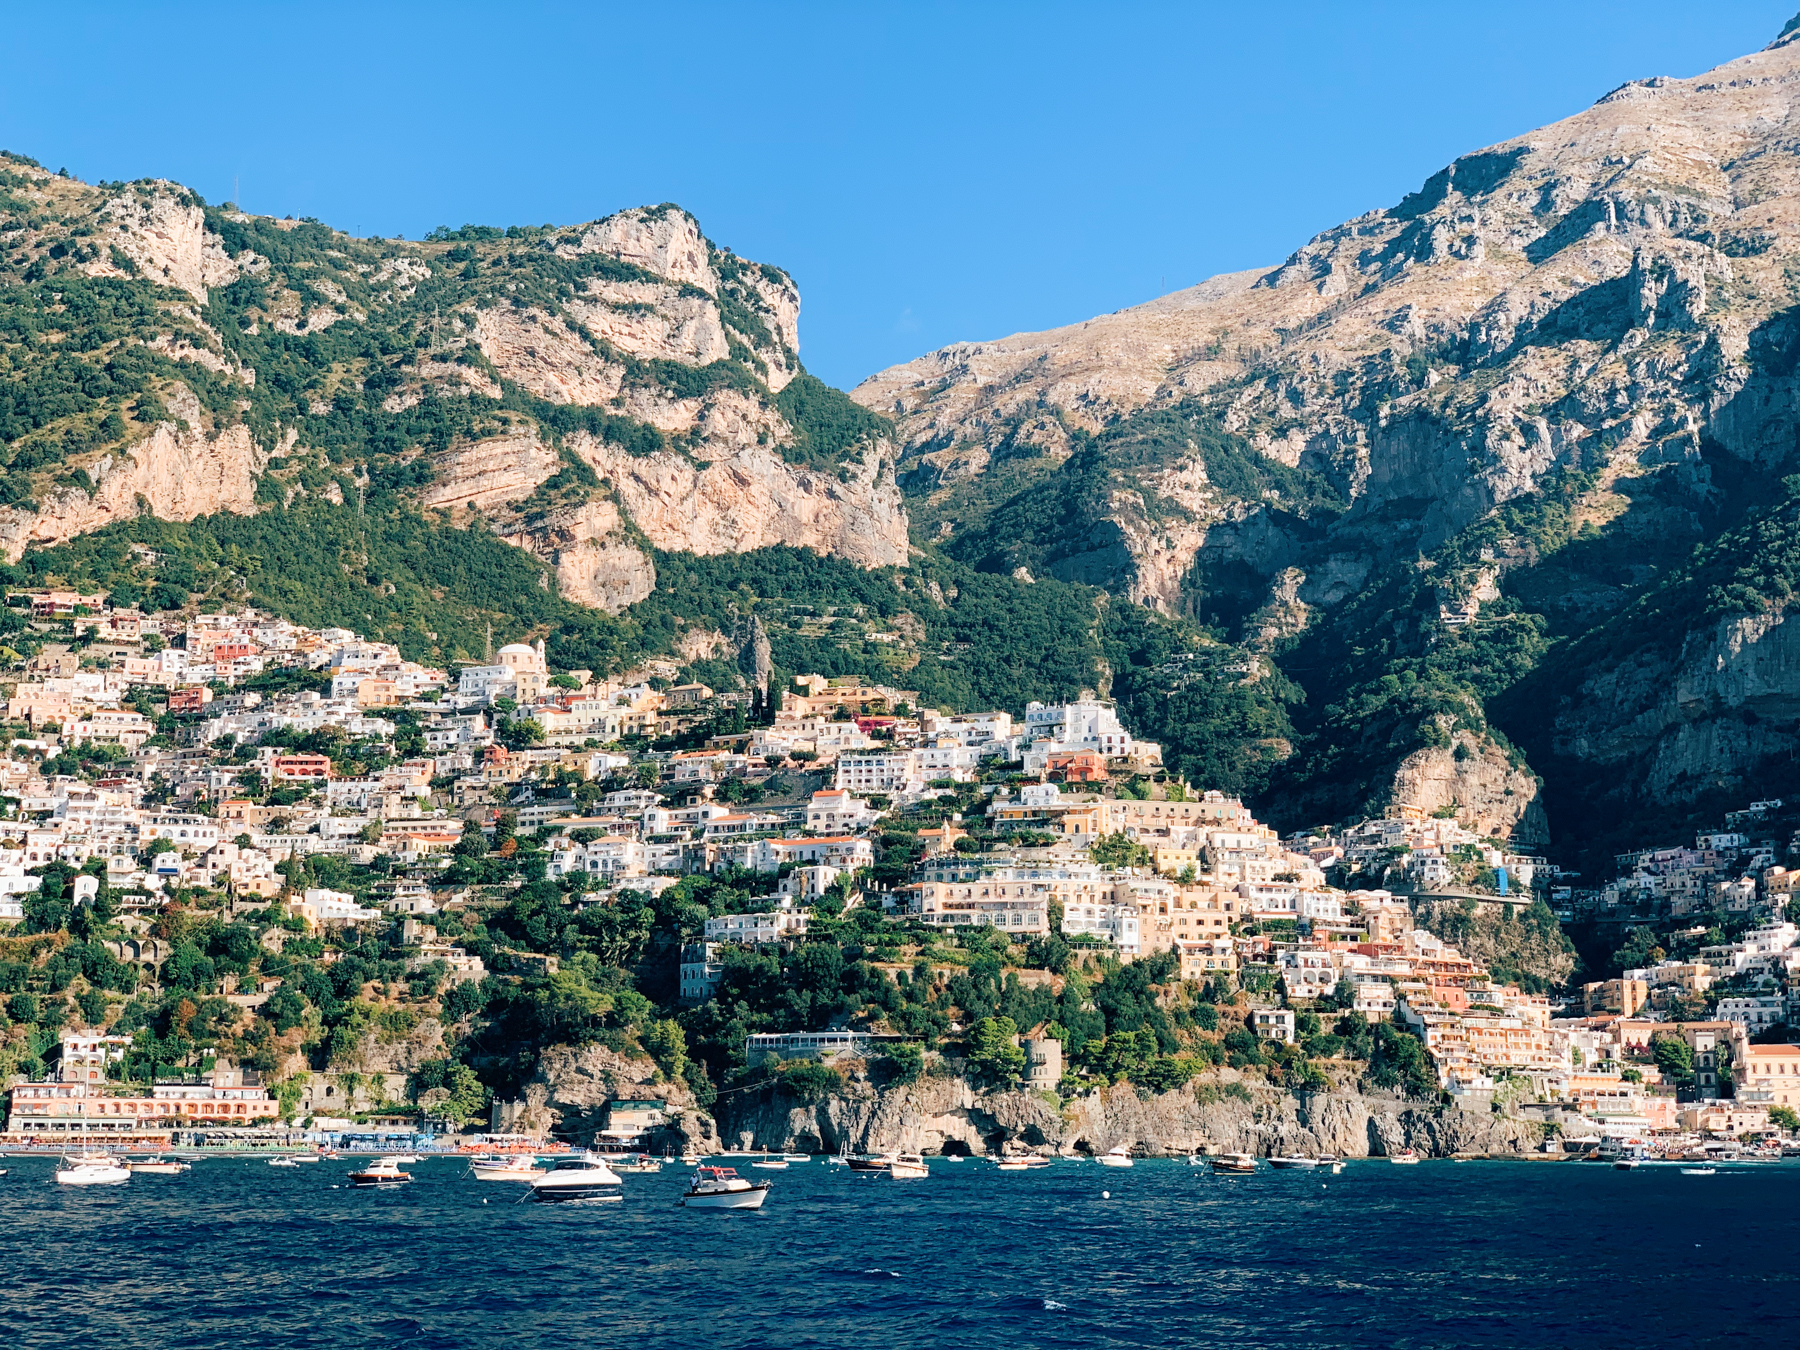 We spent a second day in Positano, this time coming in by ferry